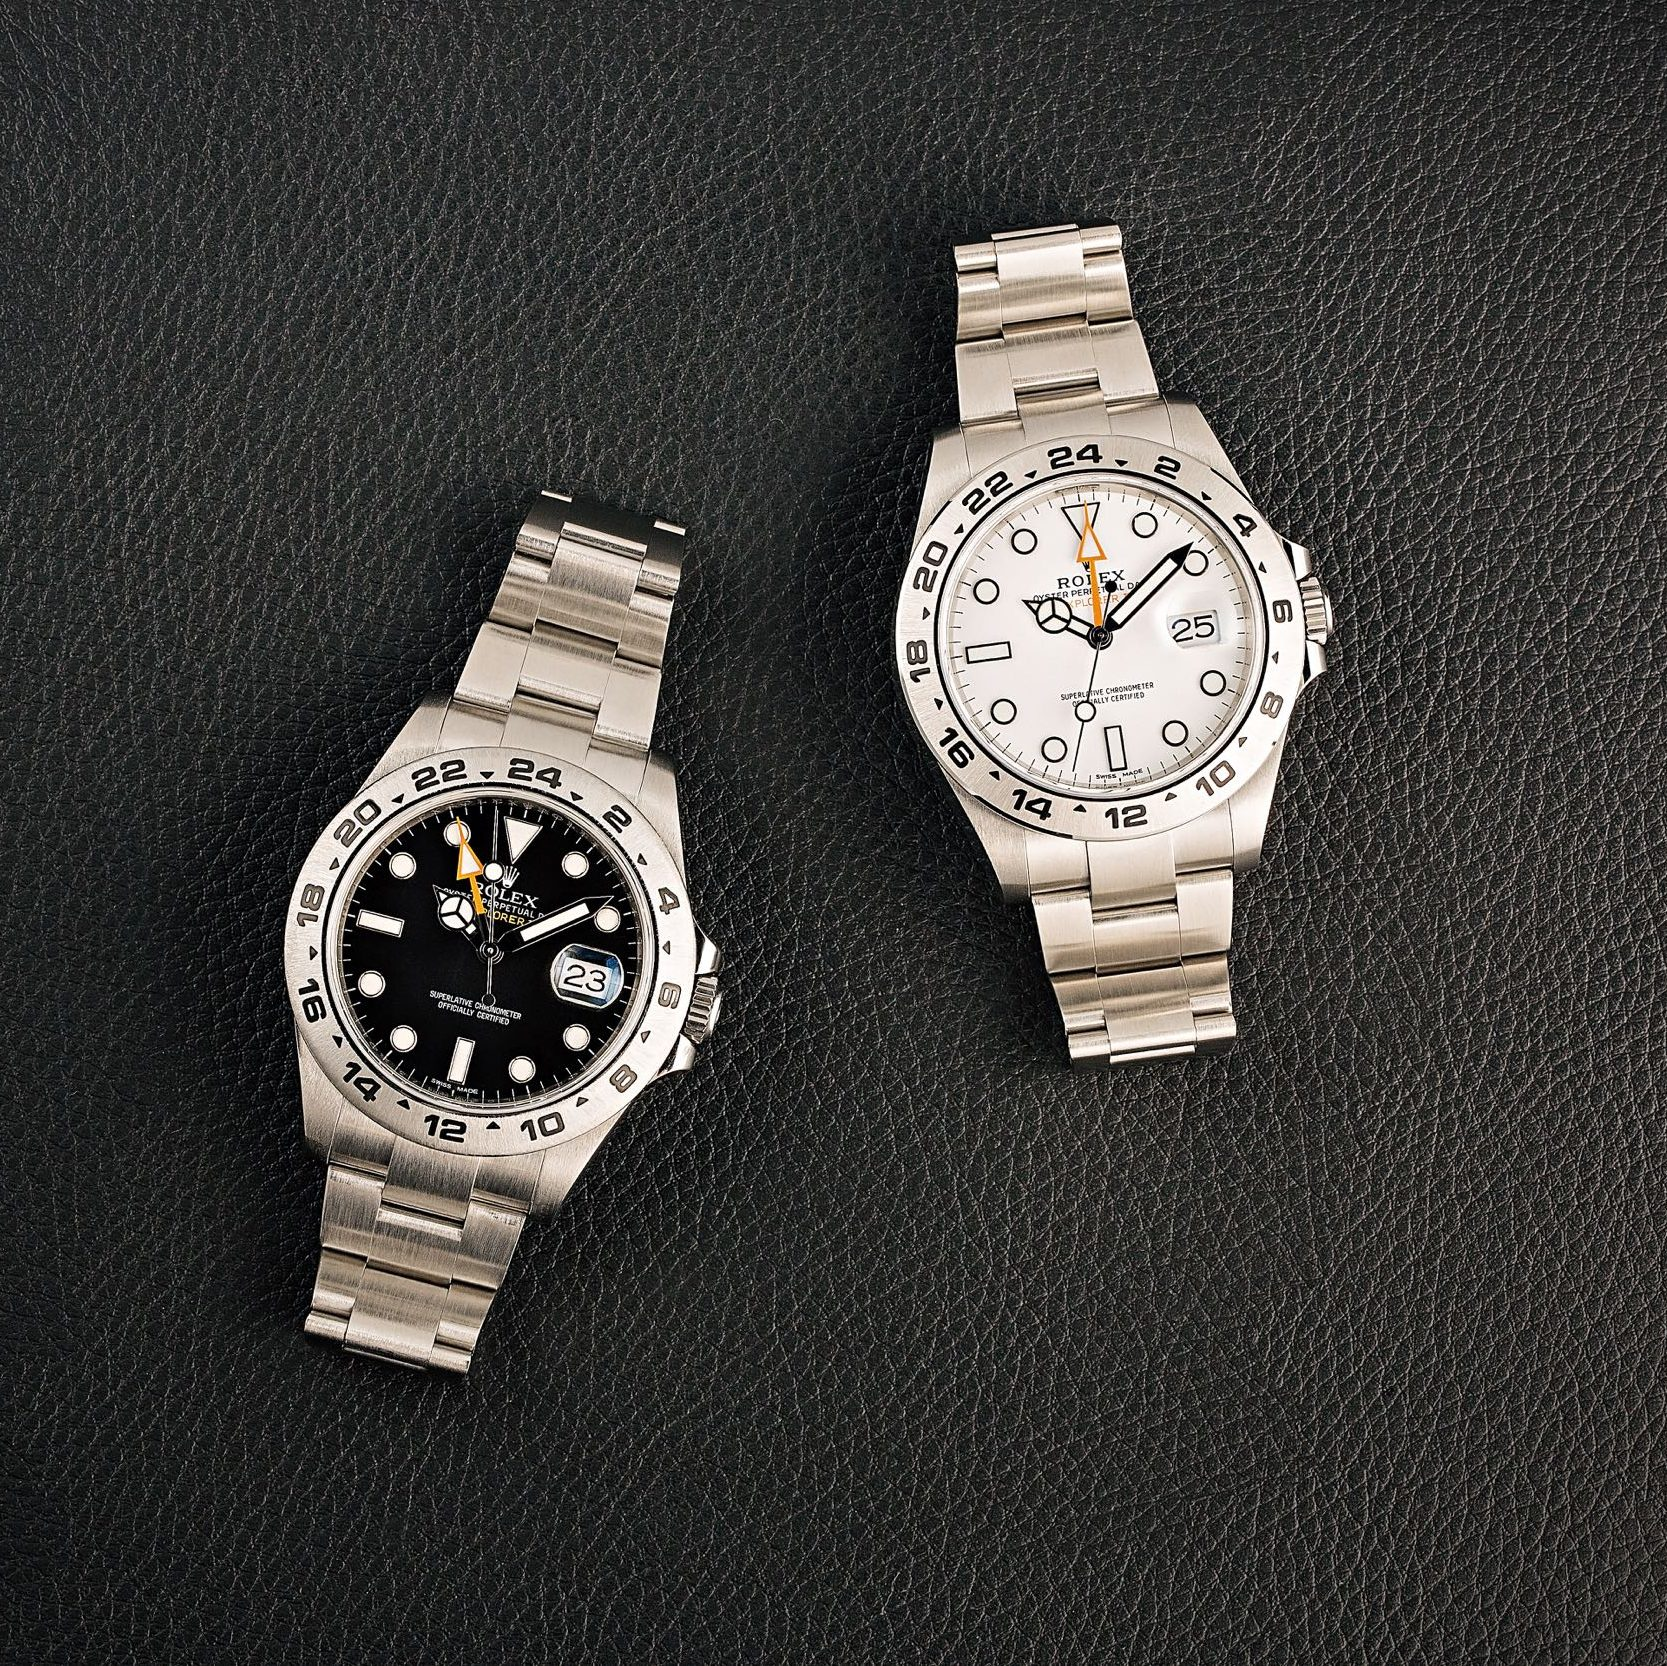 Explorer II ref 216570 what and black dials